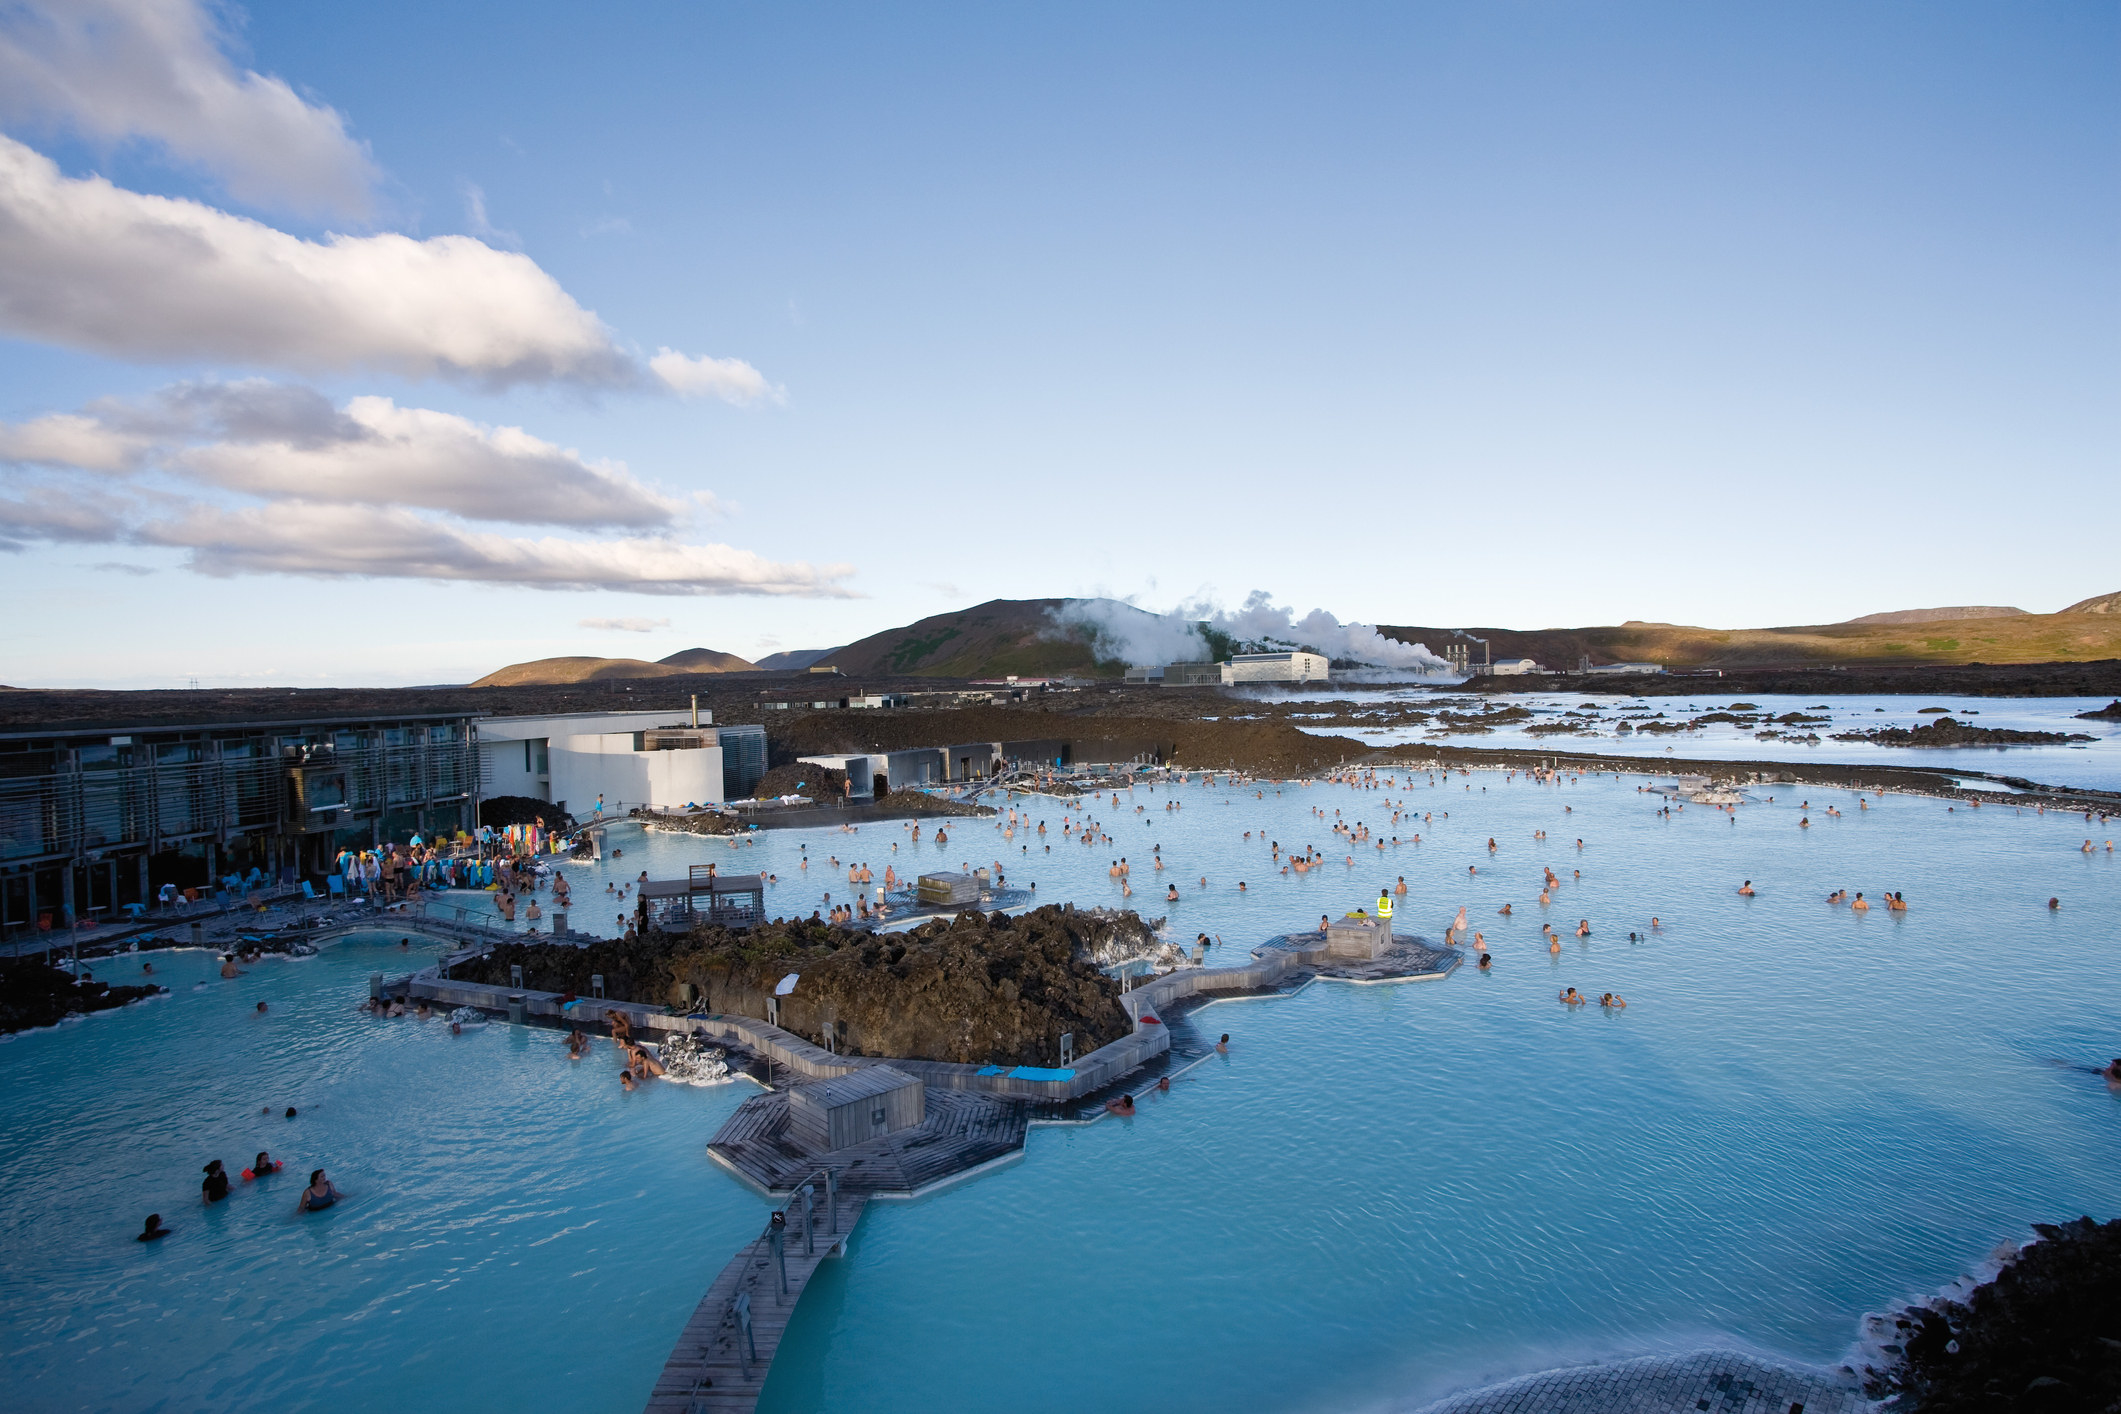 The Blue Lagoon outisde of Reykjavik.